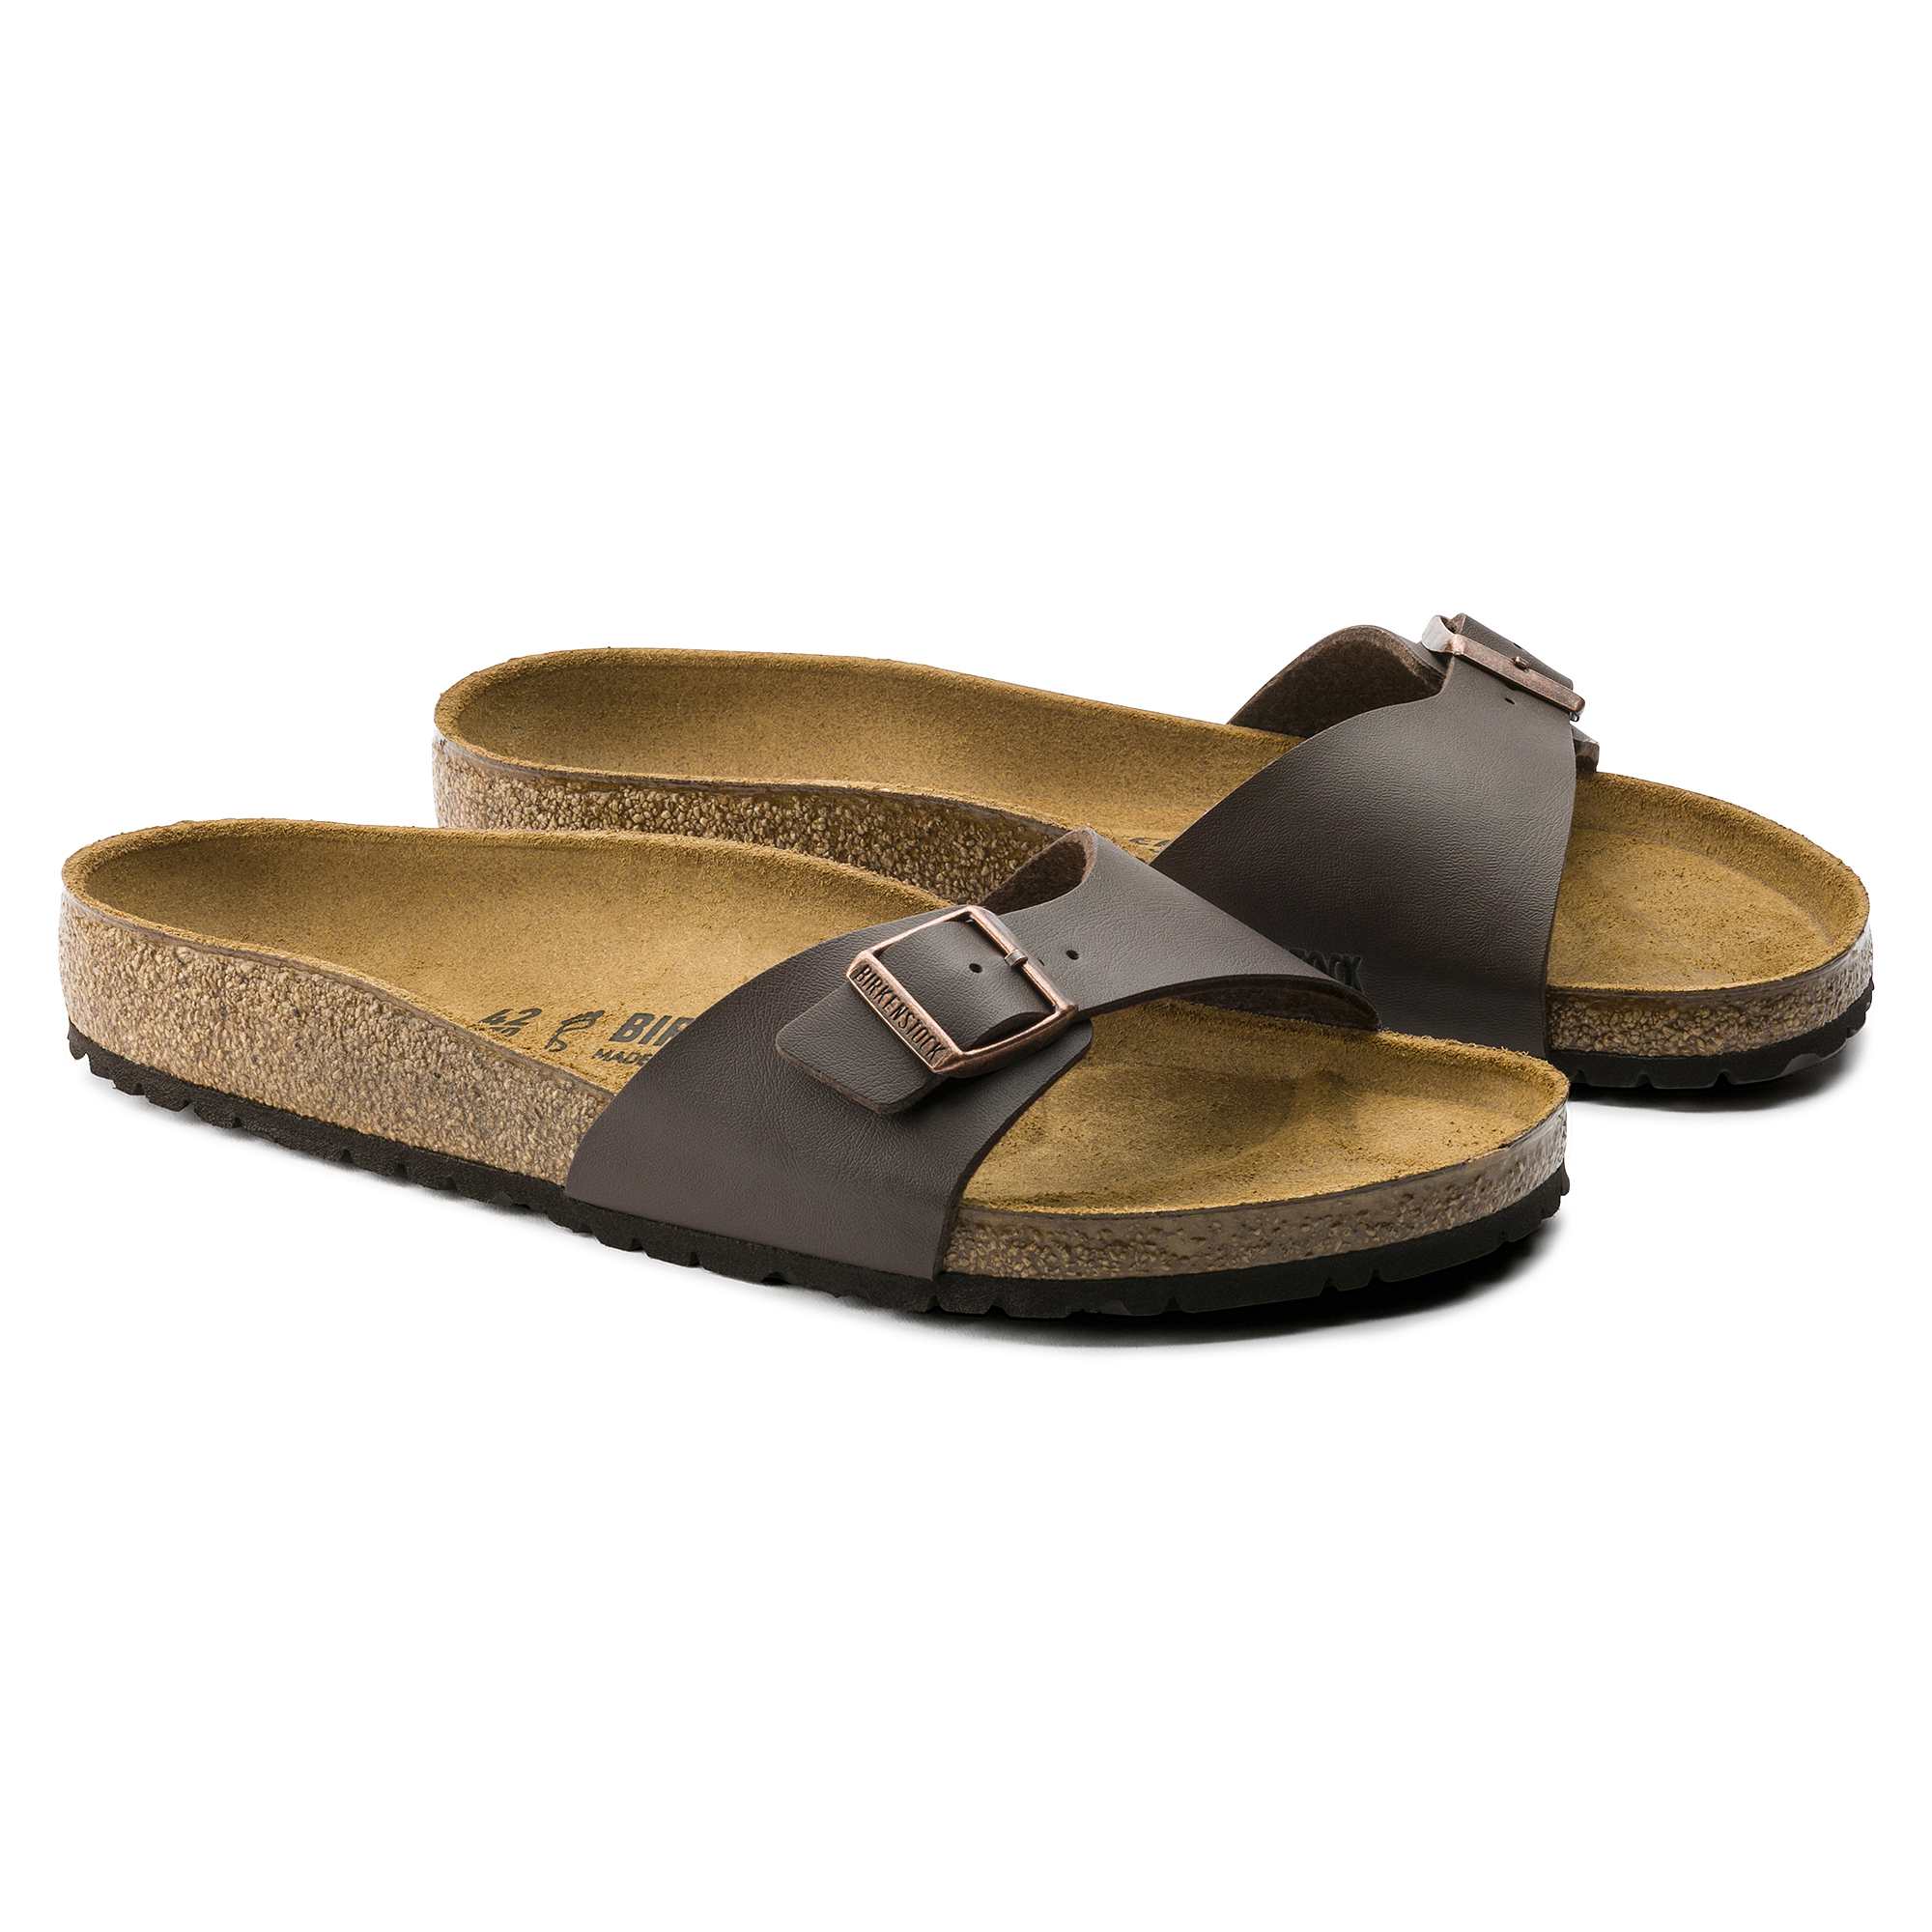 Birkenstock Madrid Dark Brown Slide Sandals Birkenstock